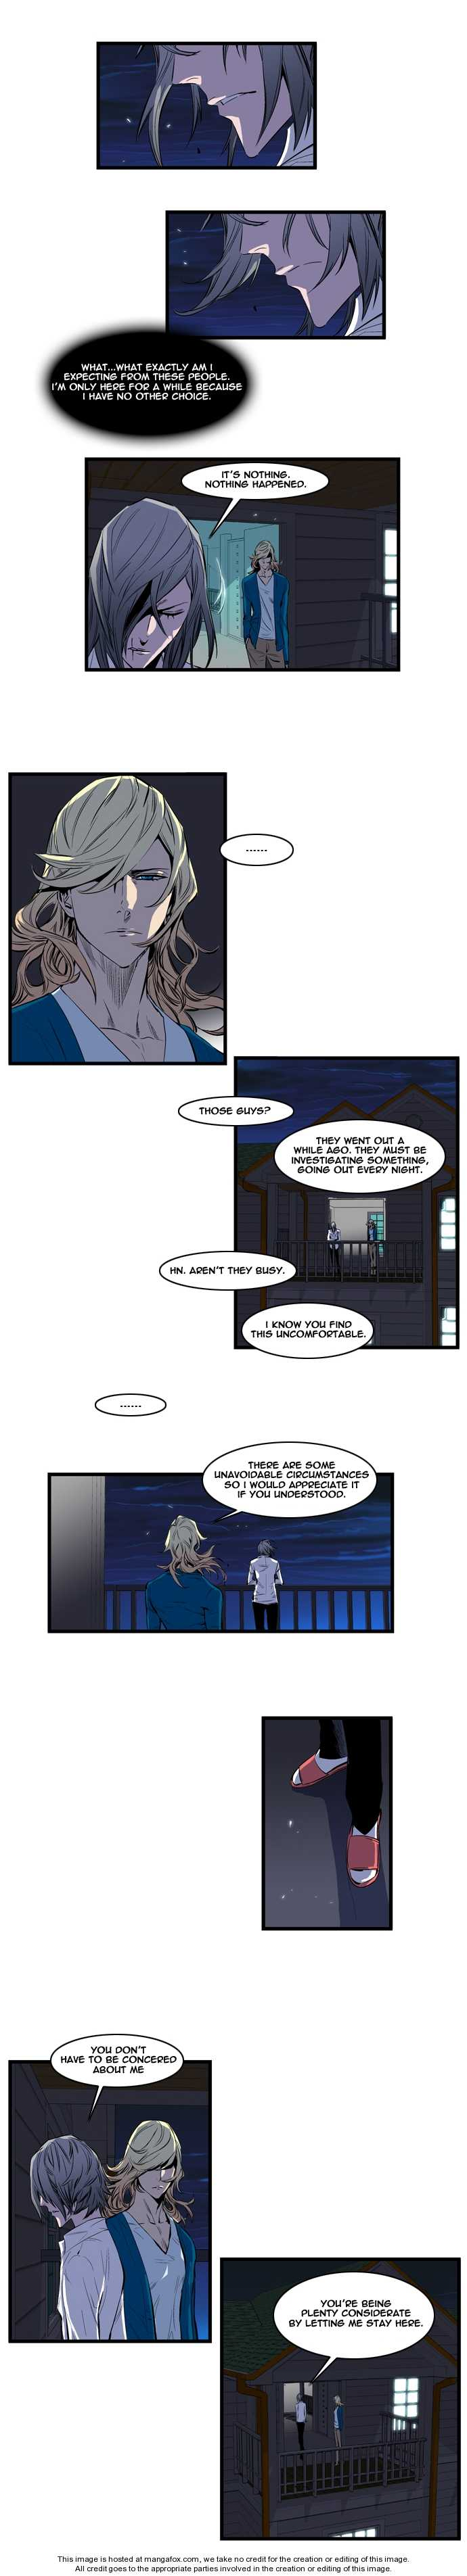 Noblesse 104 Page 2